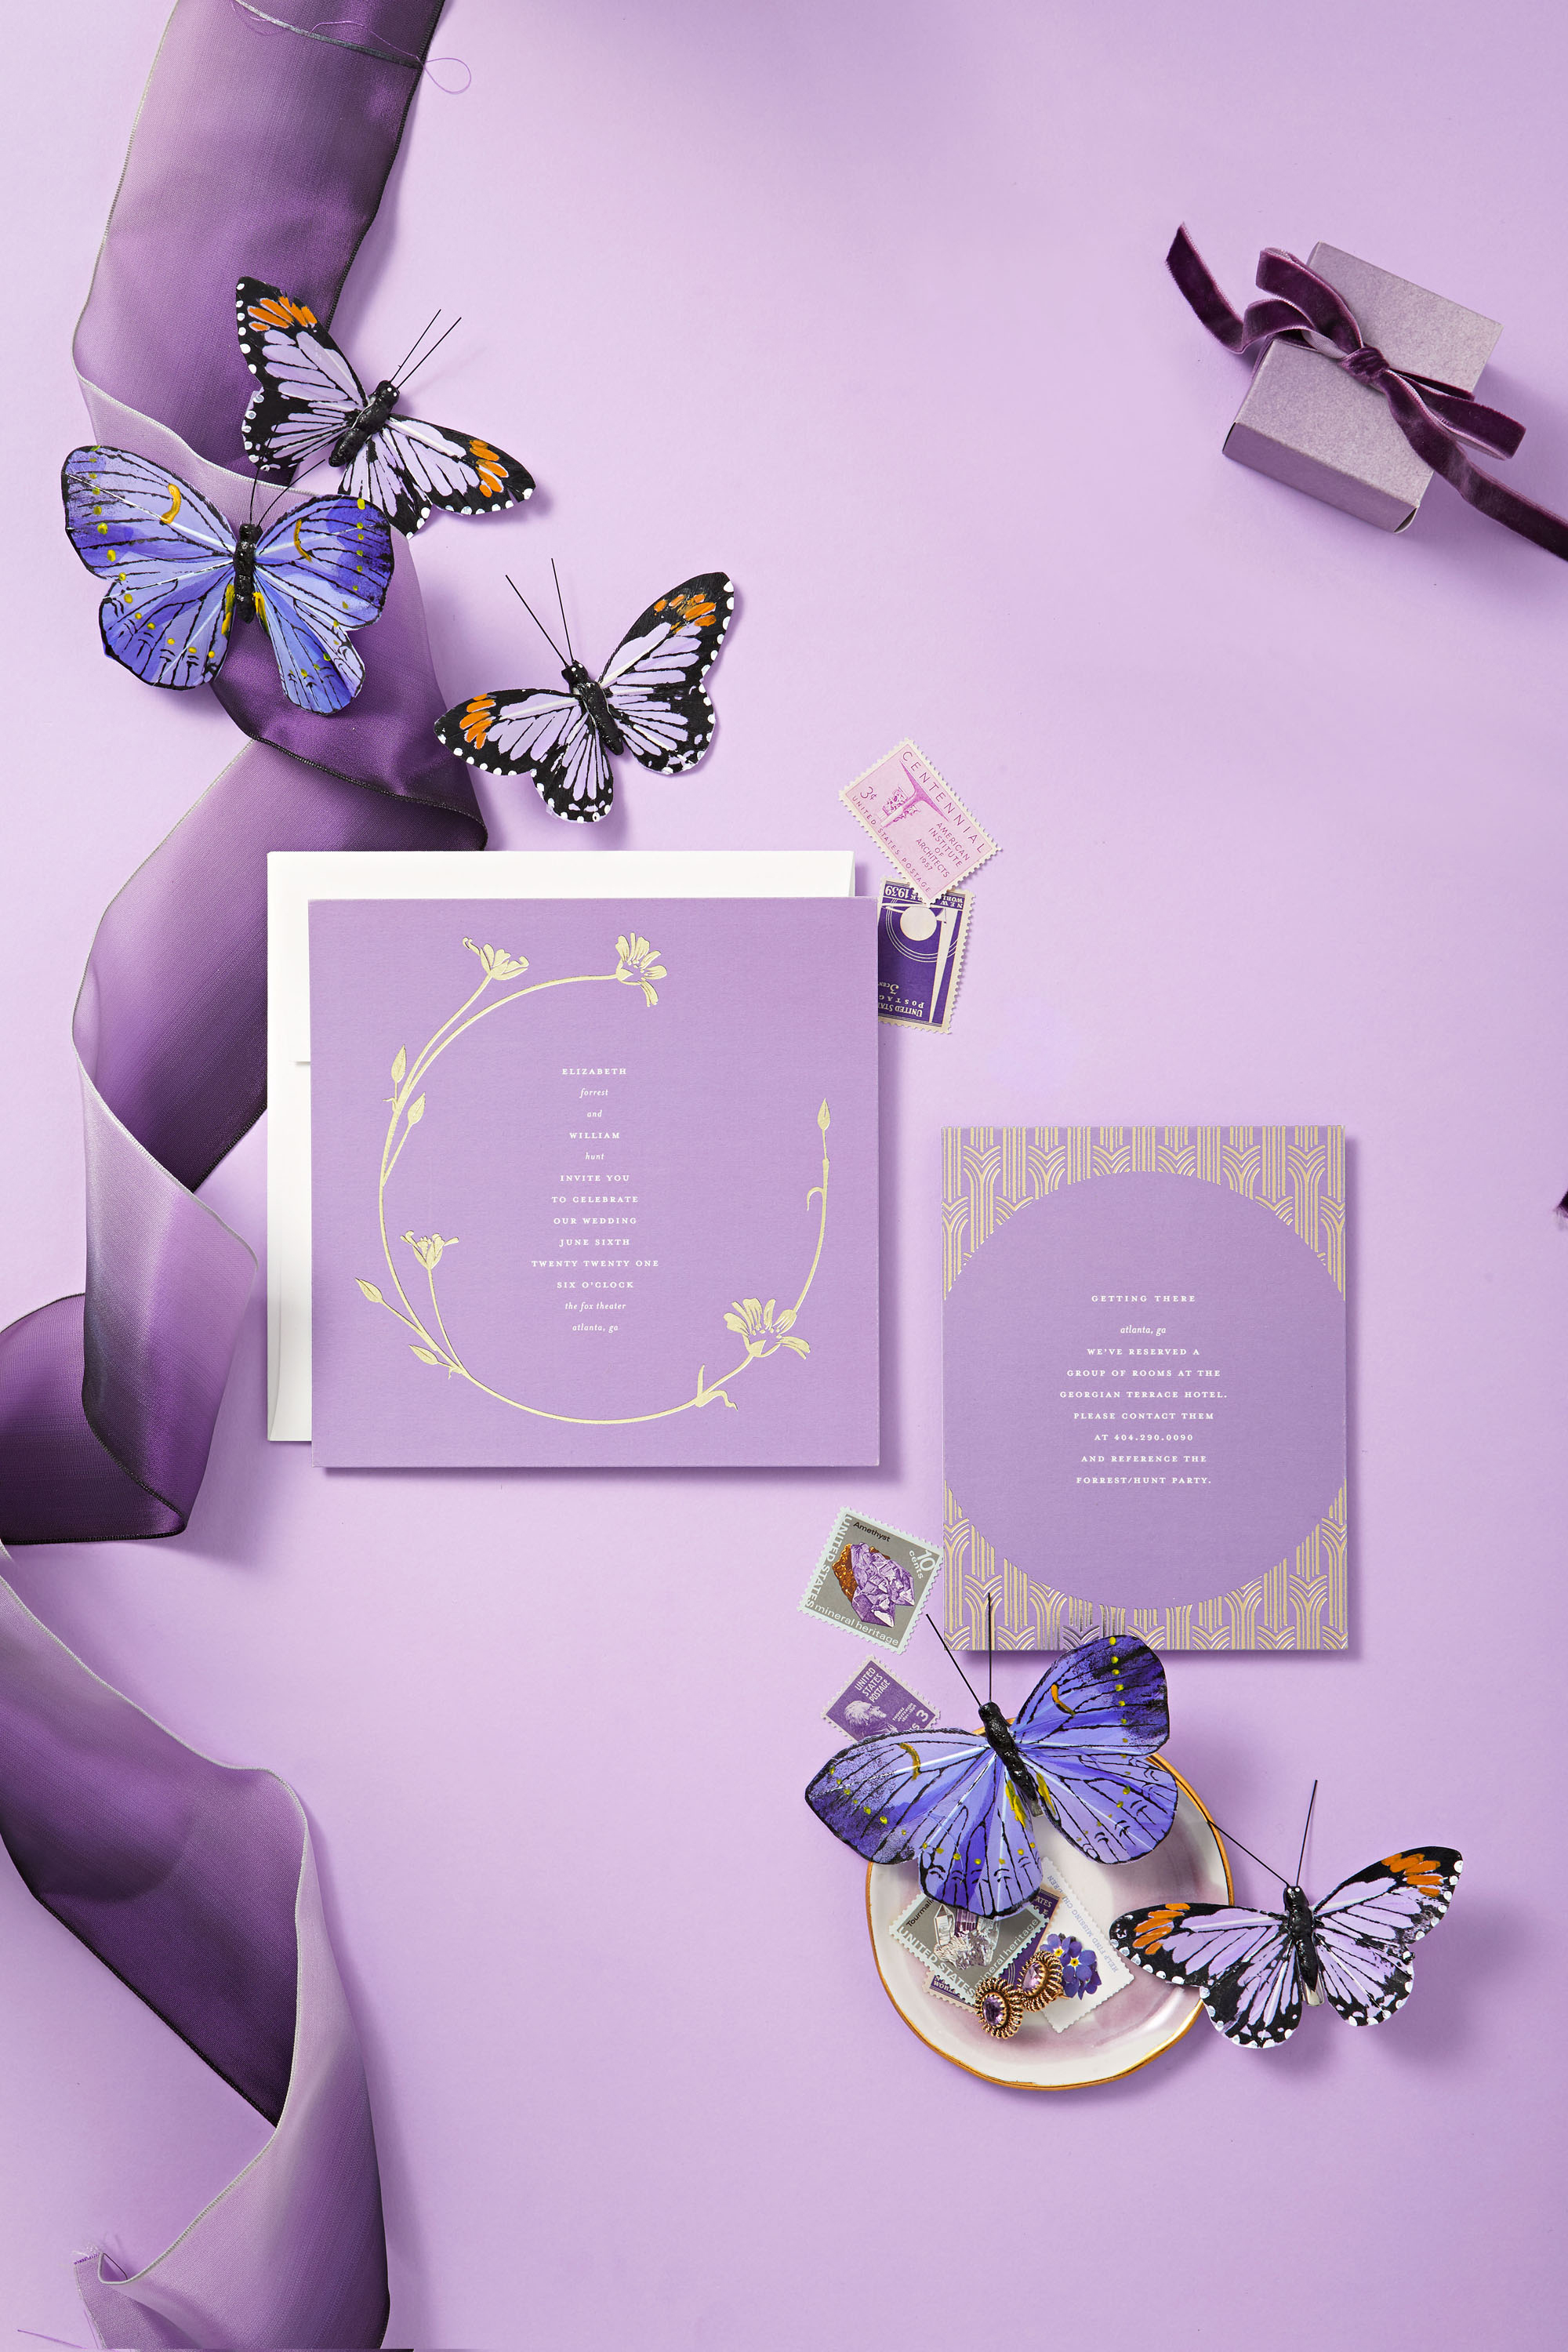 How to Choose Your Wedding Invitations Based on Your Color Palette